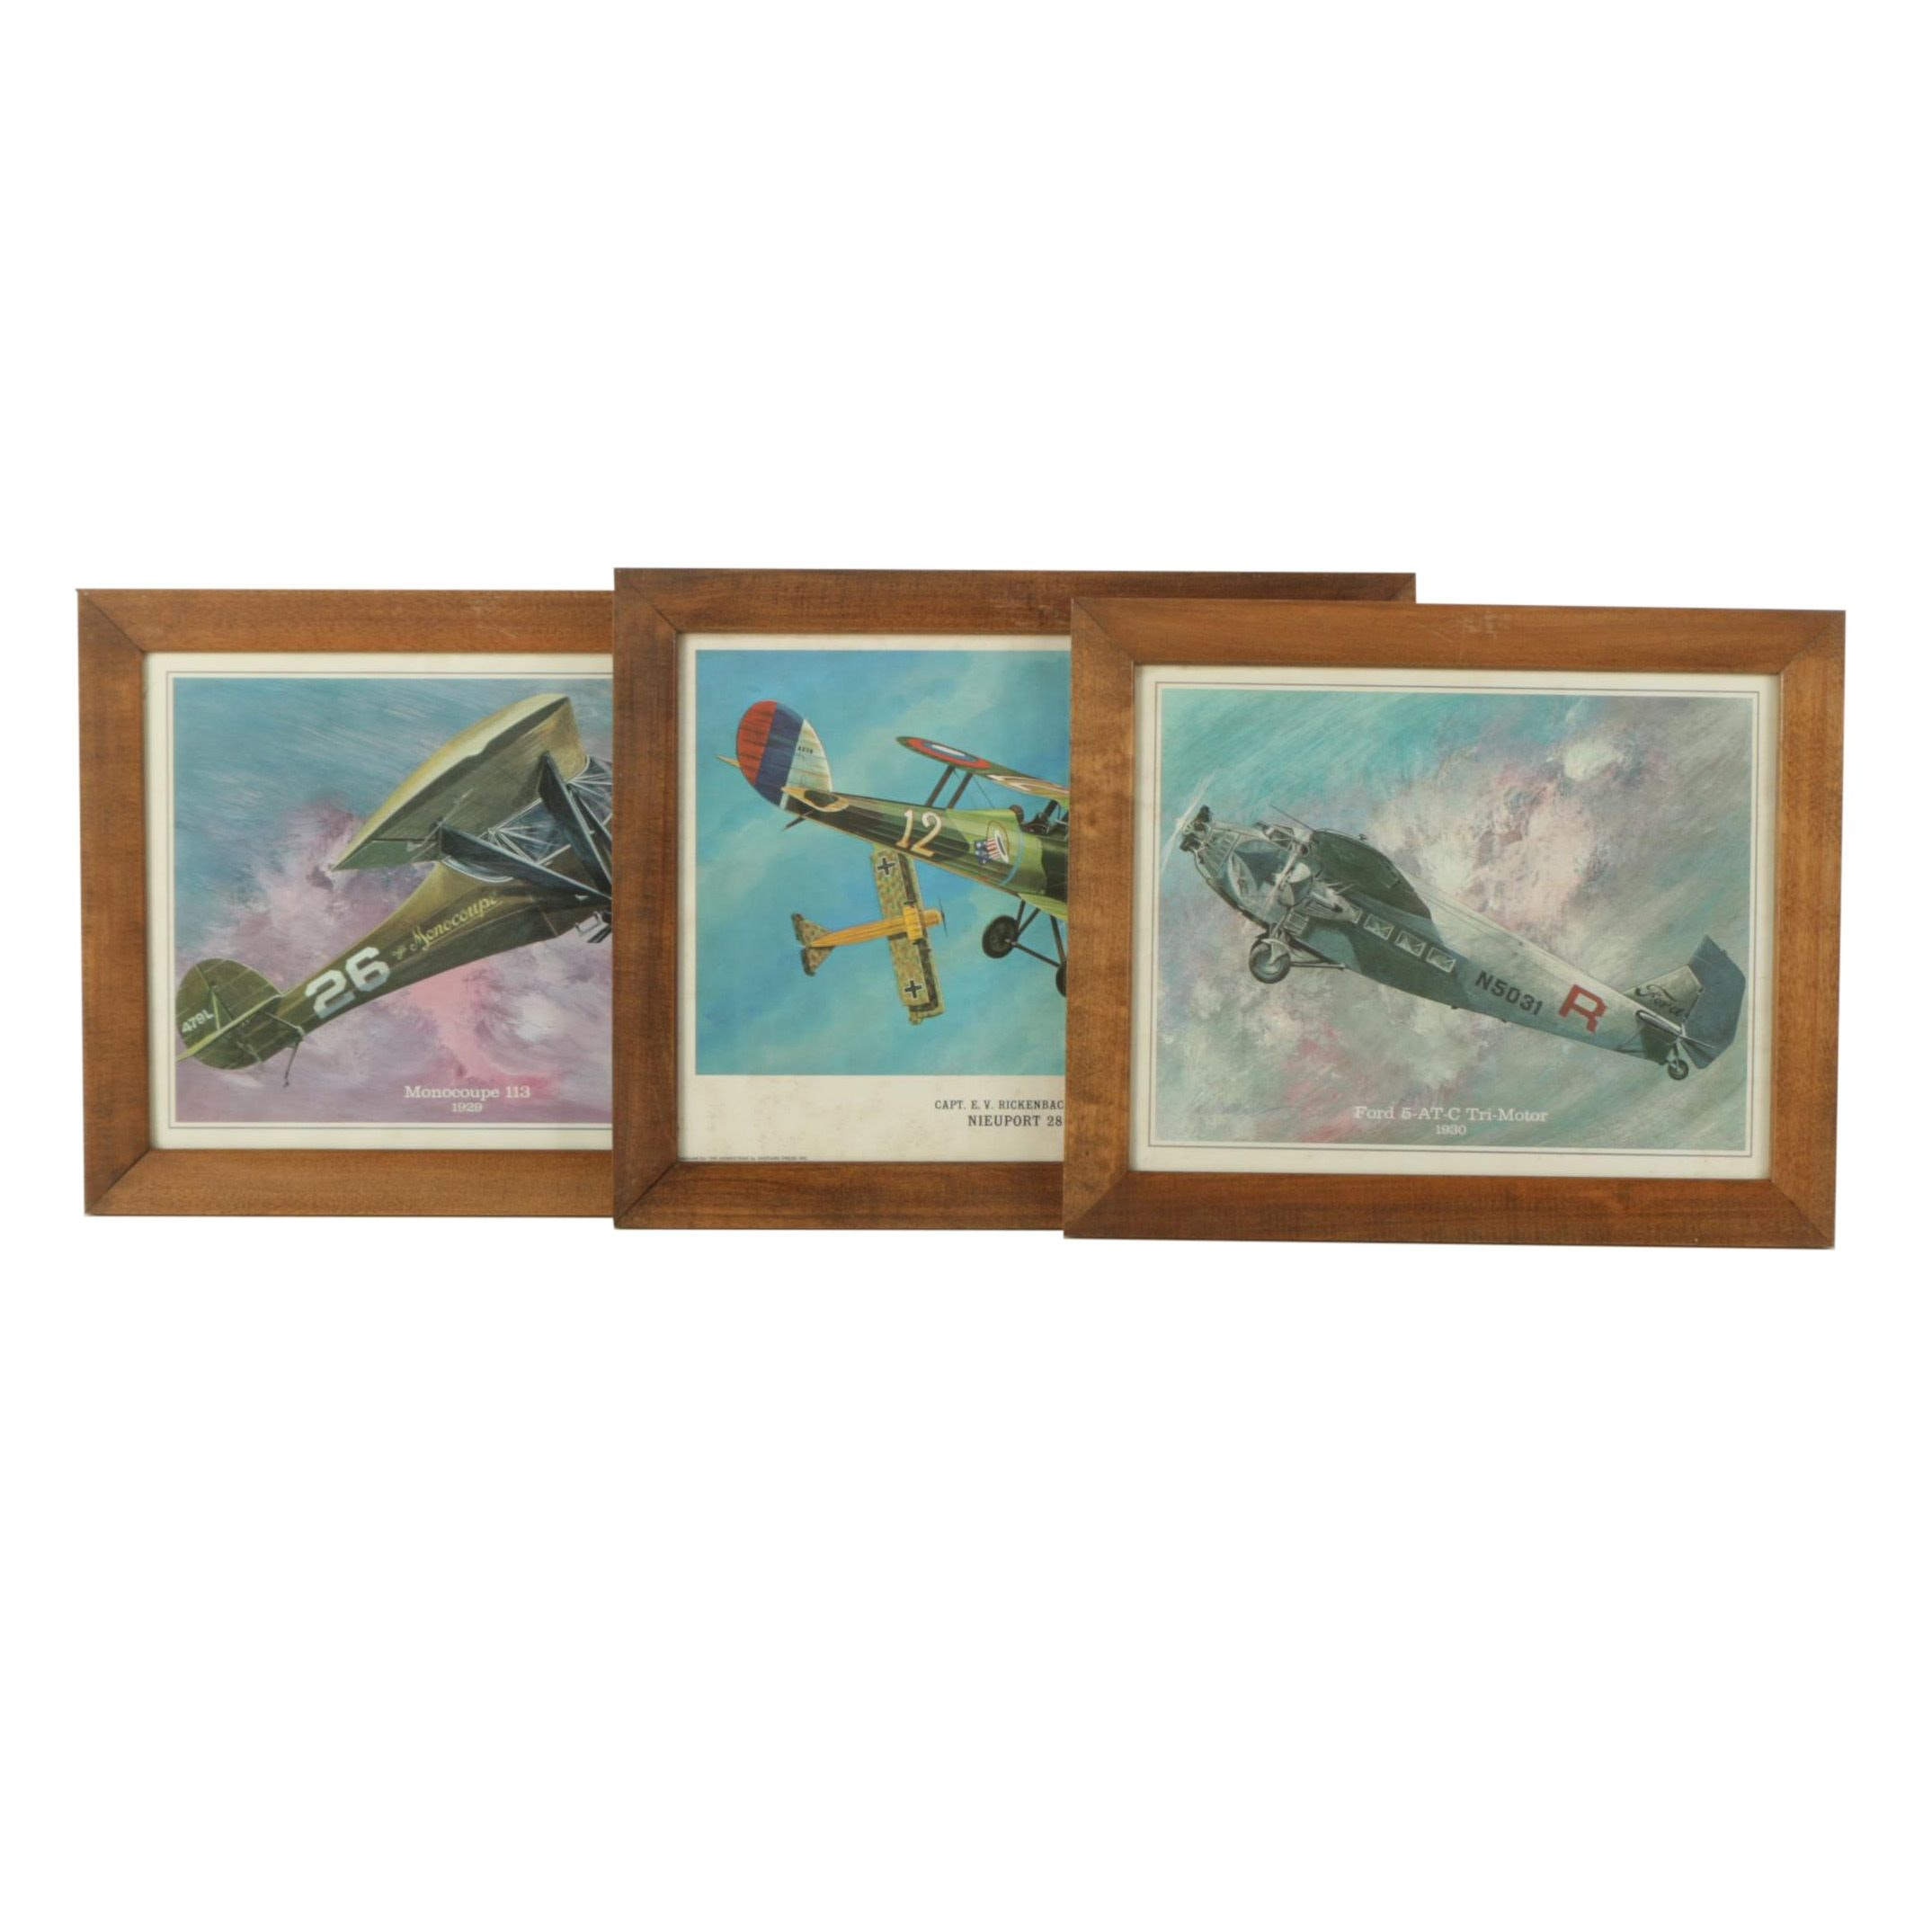 Offset Lithograph Prints of Vintage Airplanes